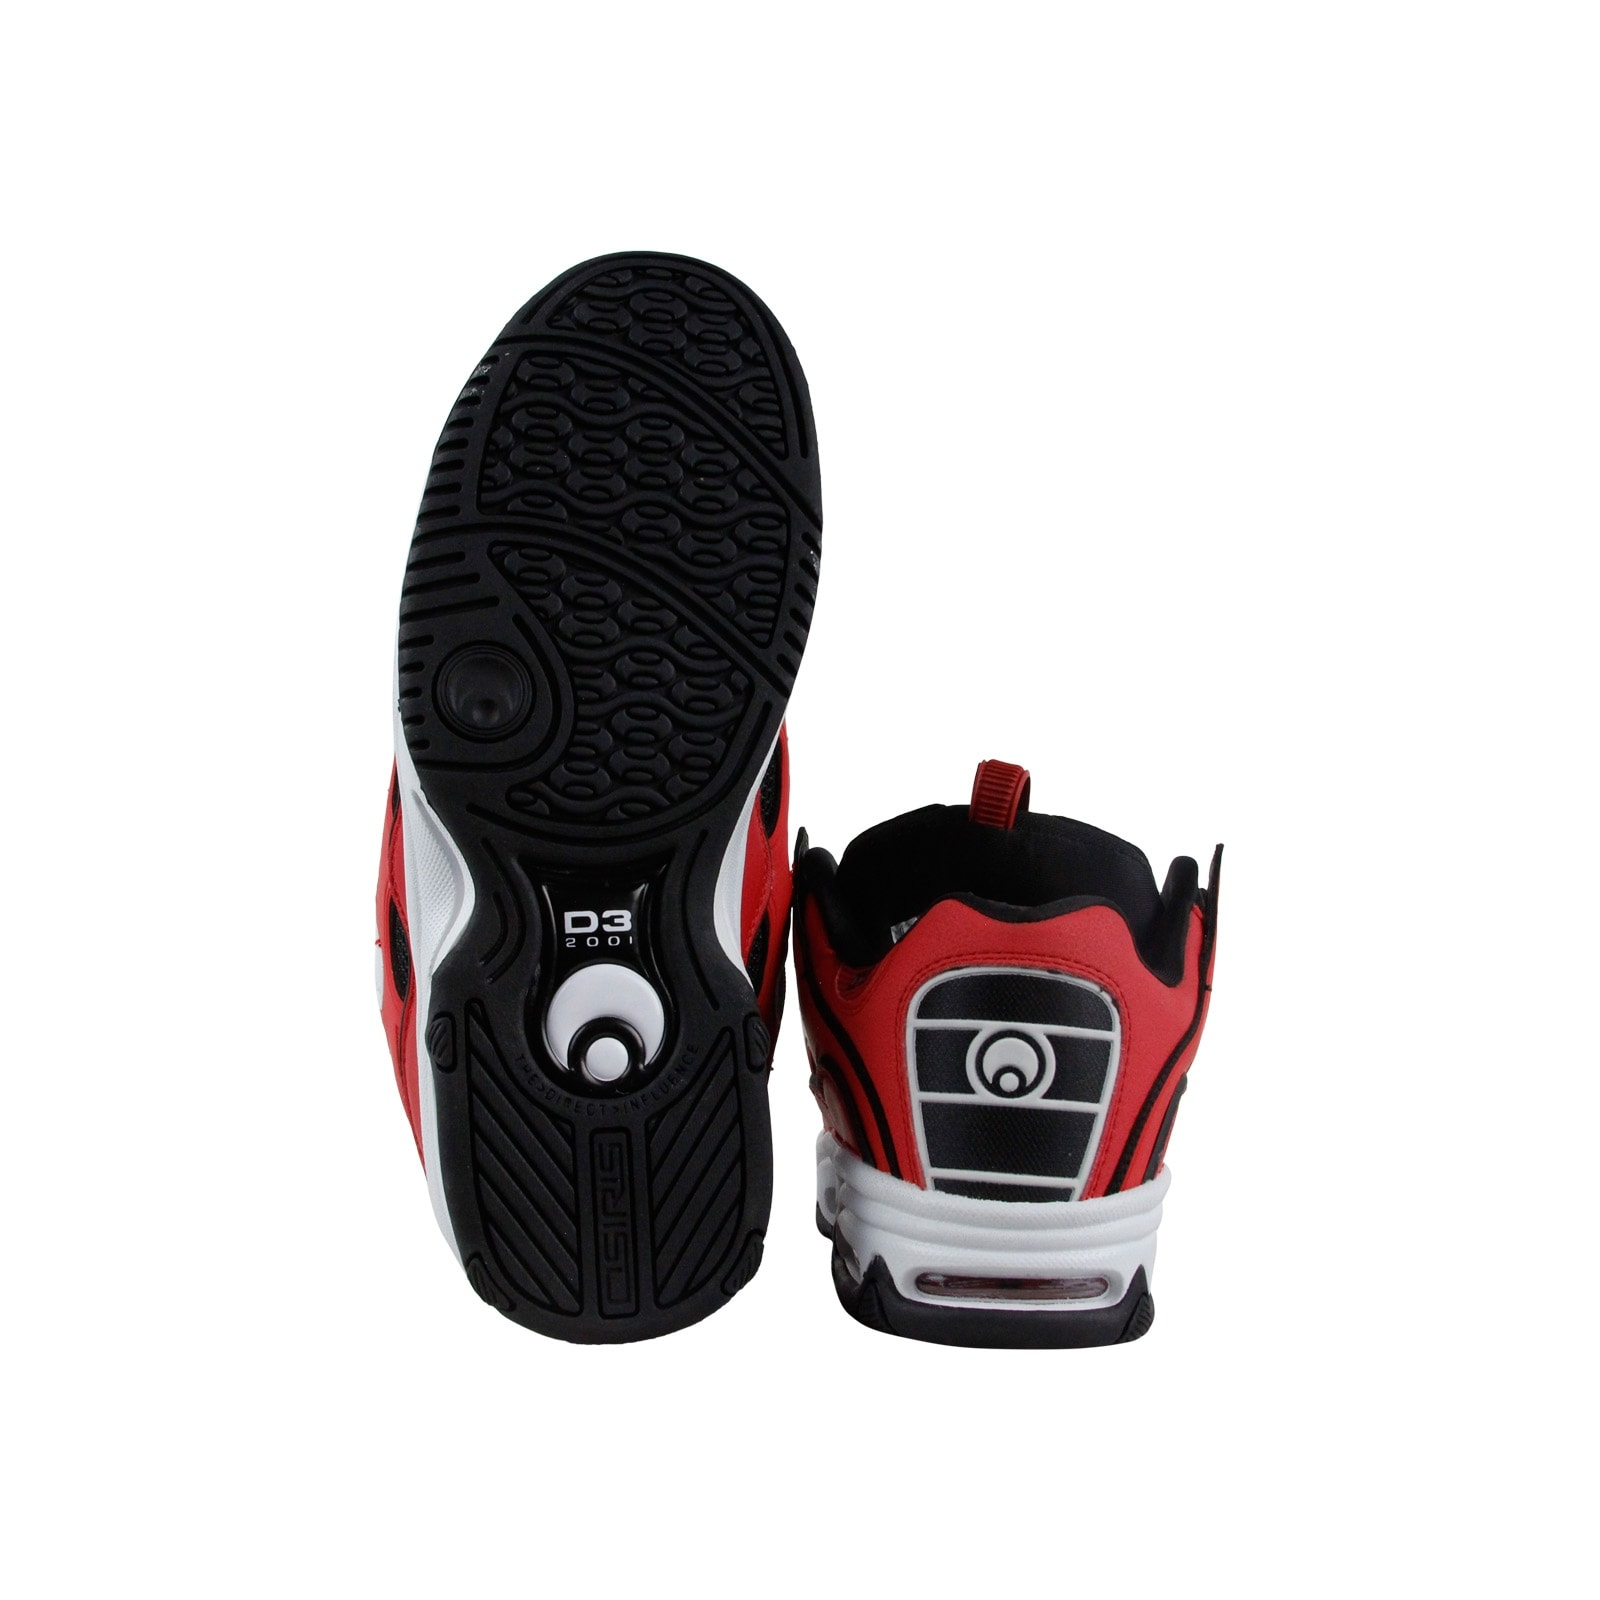 a88fd2aa45 Shop Osiris D3 2001 Mens Red Synthetic Athletic Lace Up Training Shoes - Free  Shipping Today - Overstock - 20109828